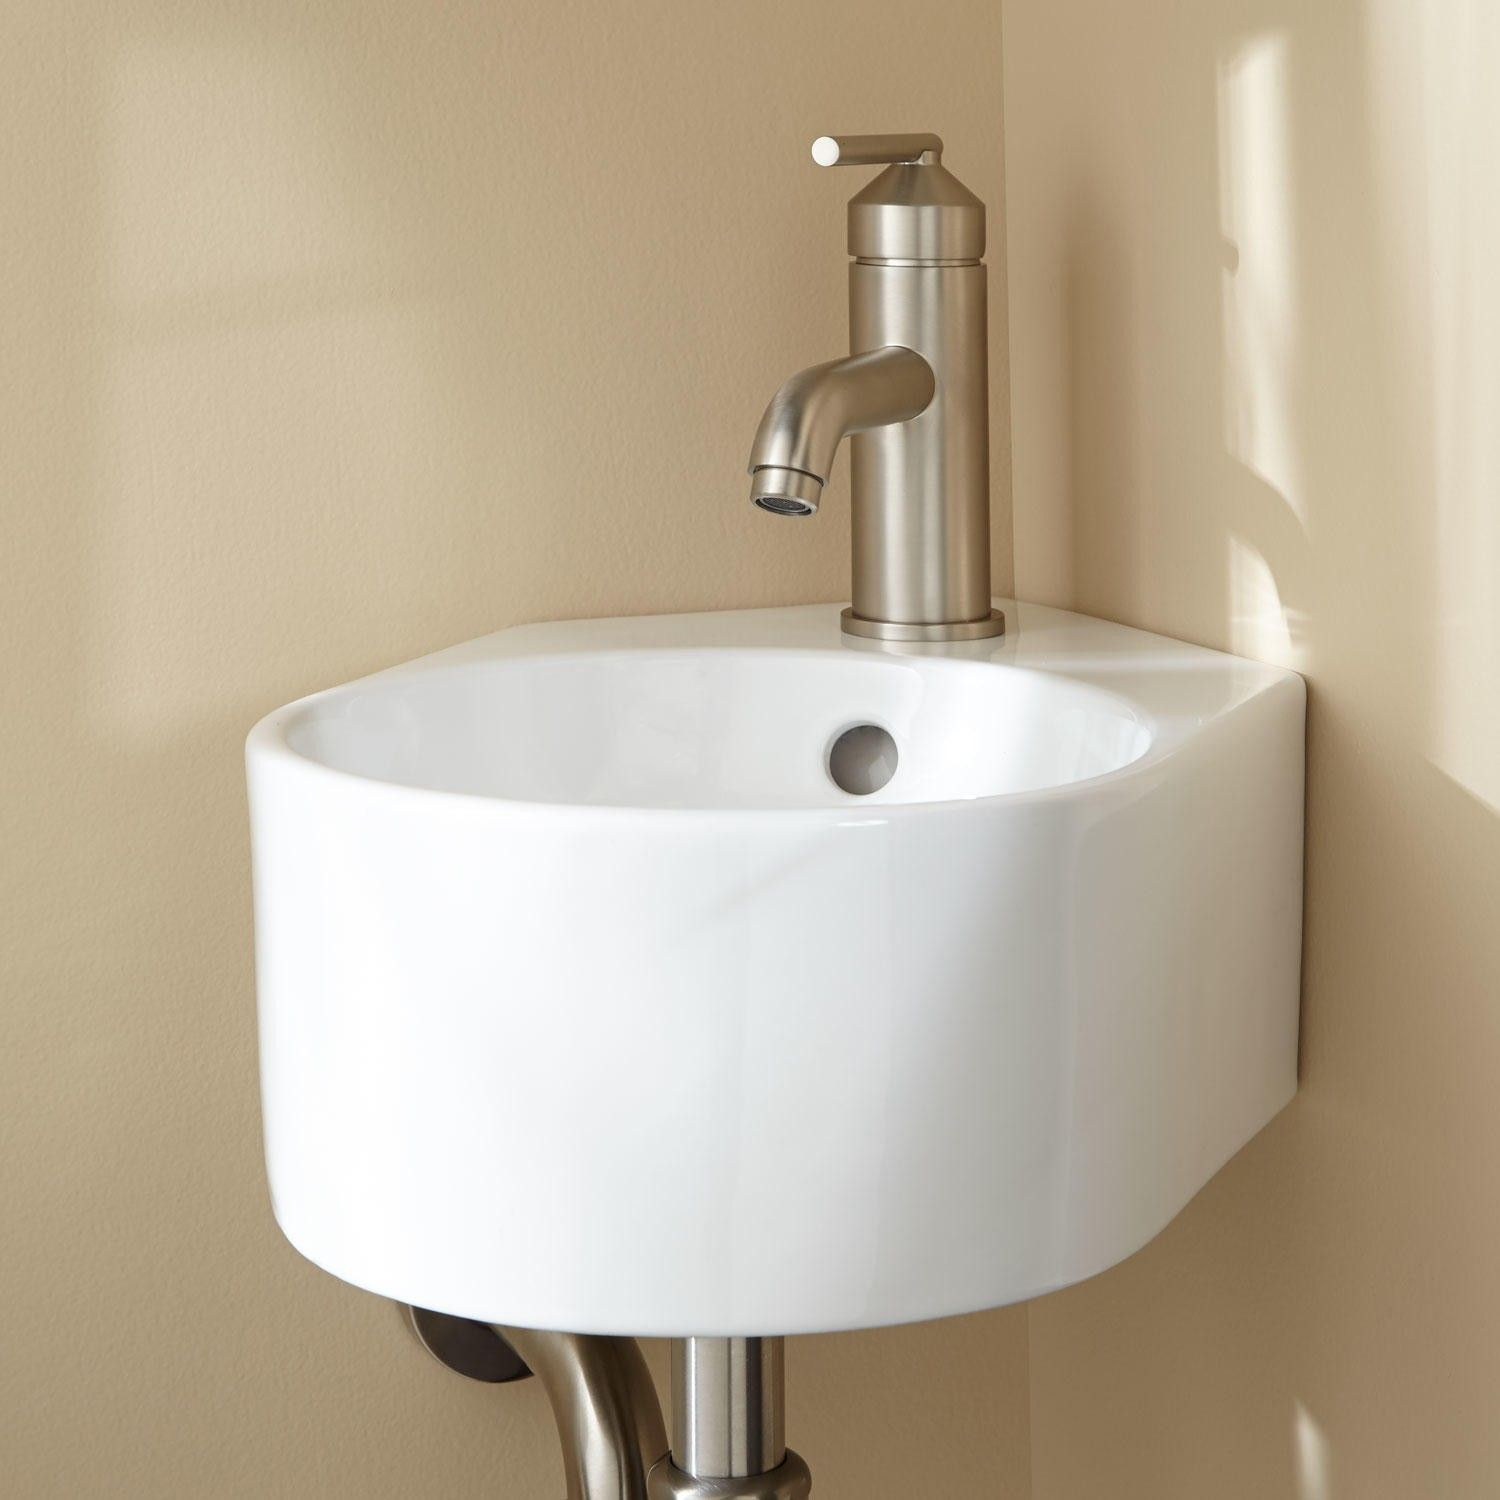 Great Corner Shape. Iu0027d Want To Add Little Shelves Out On The Edges. Adella  Corner Wall Mount Bathroom Sink